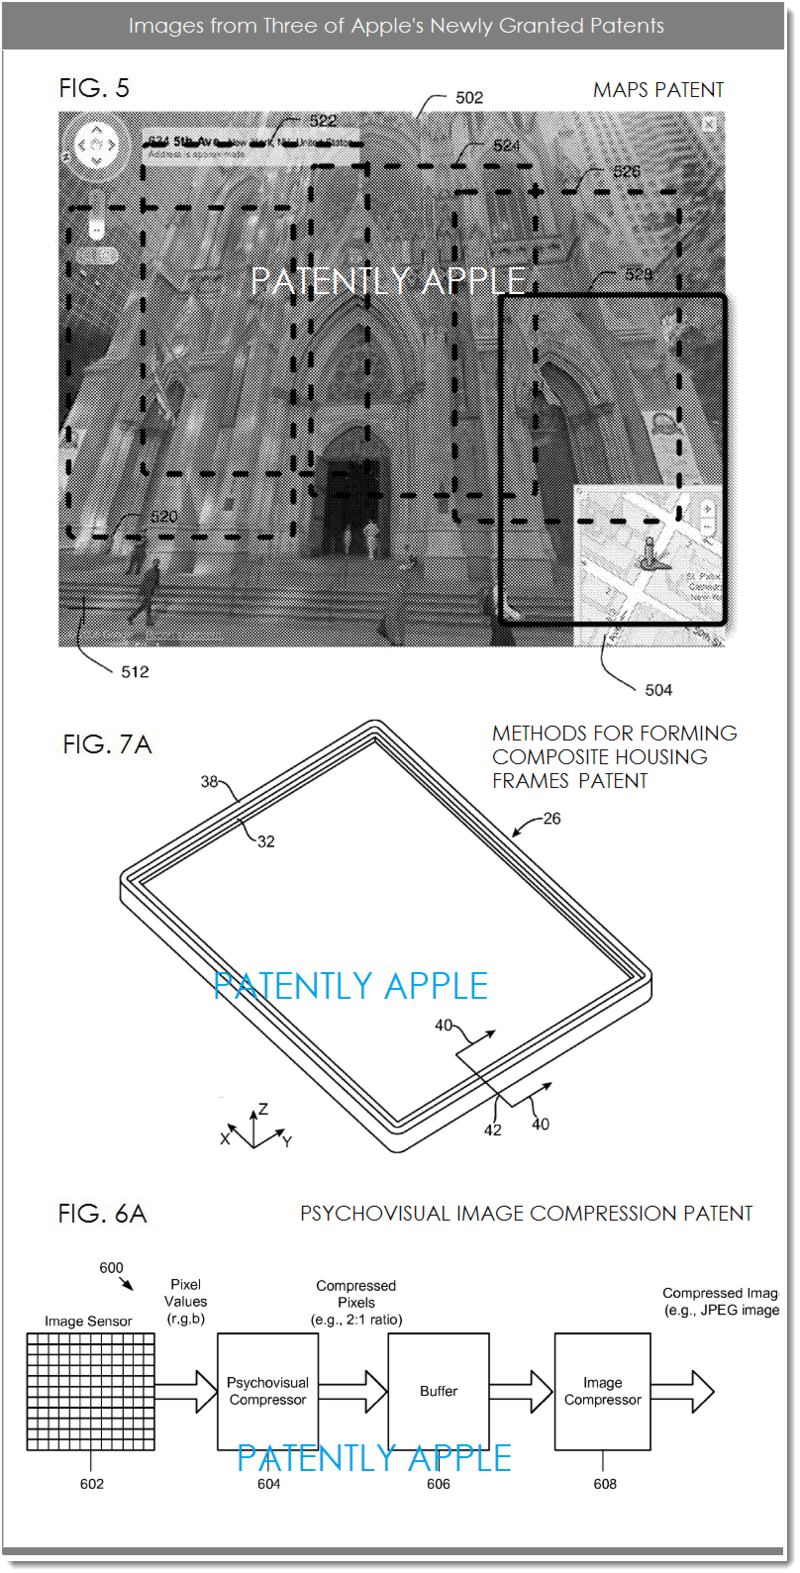 3AFF - APPLE GRANTED PATENTS - 3 PATENTS, 3 IMAGES